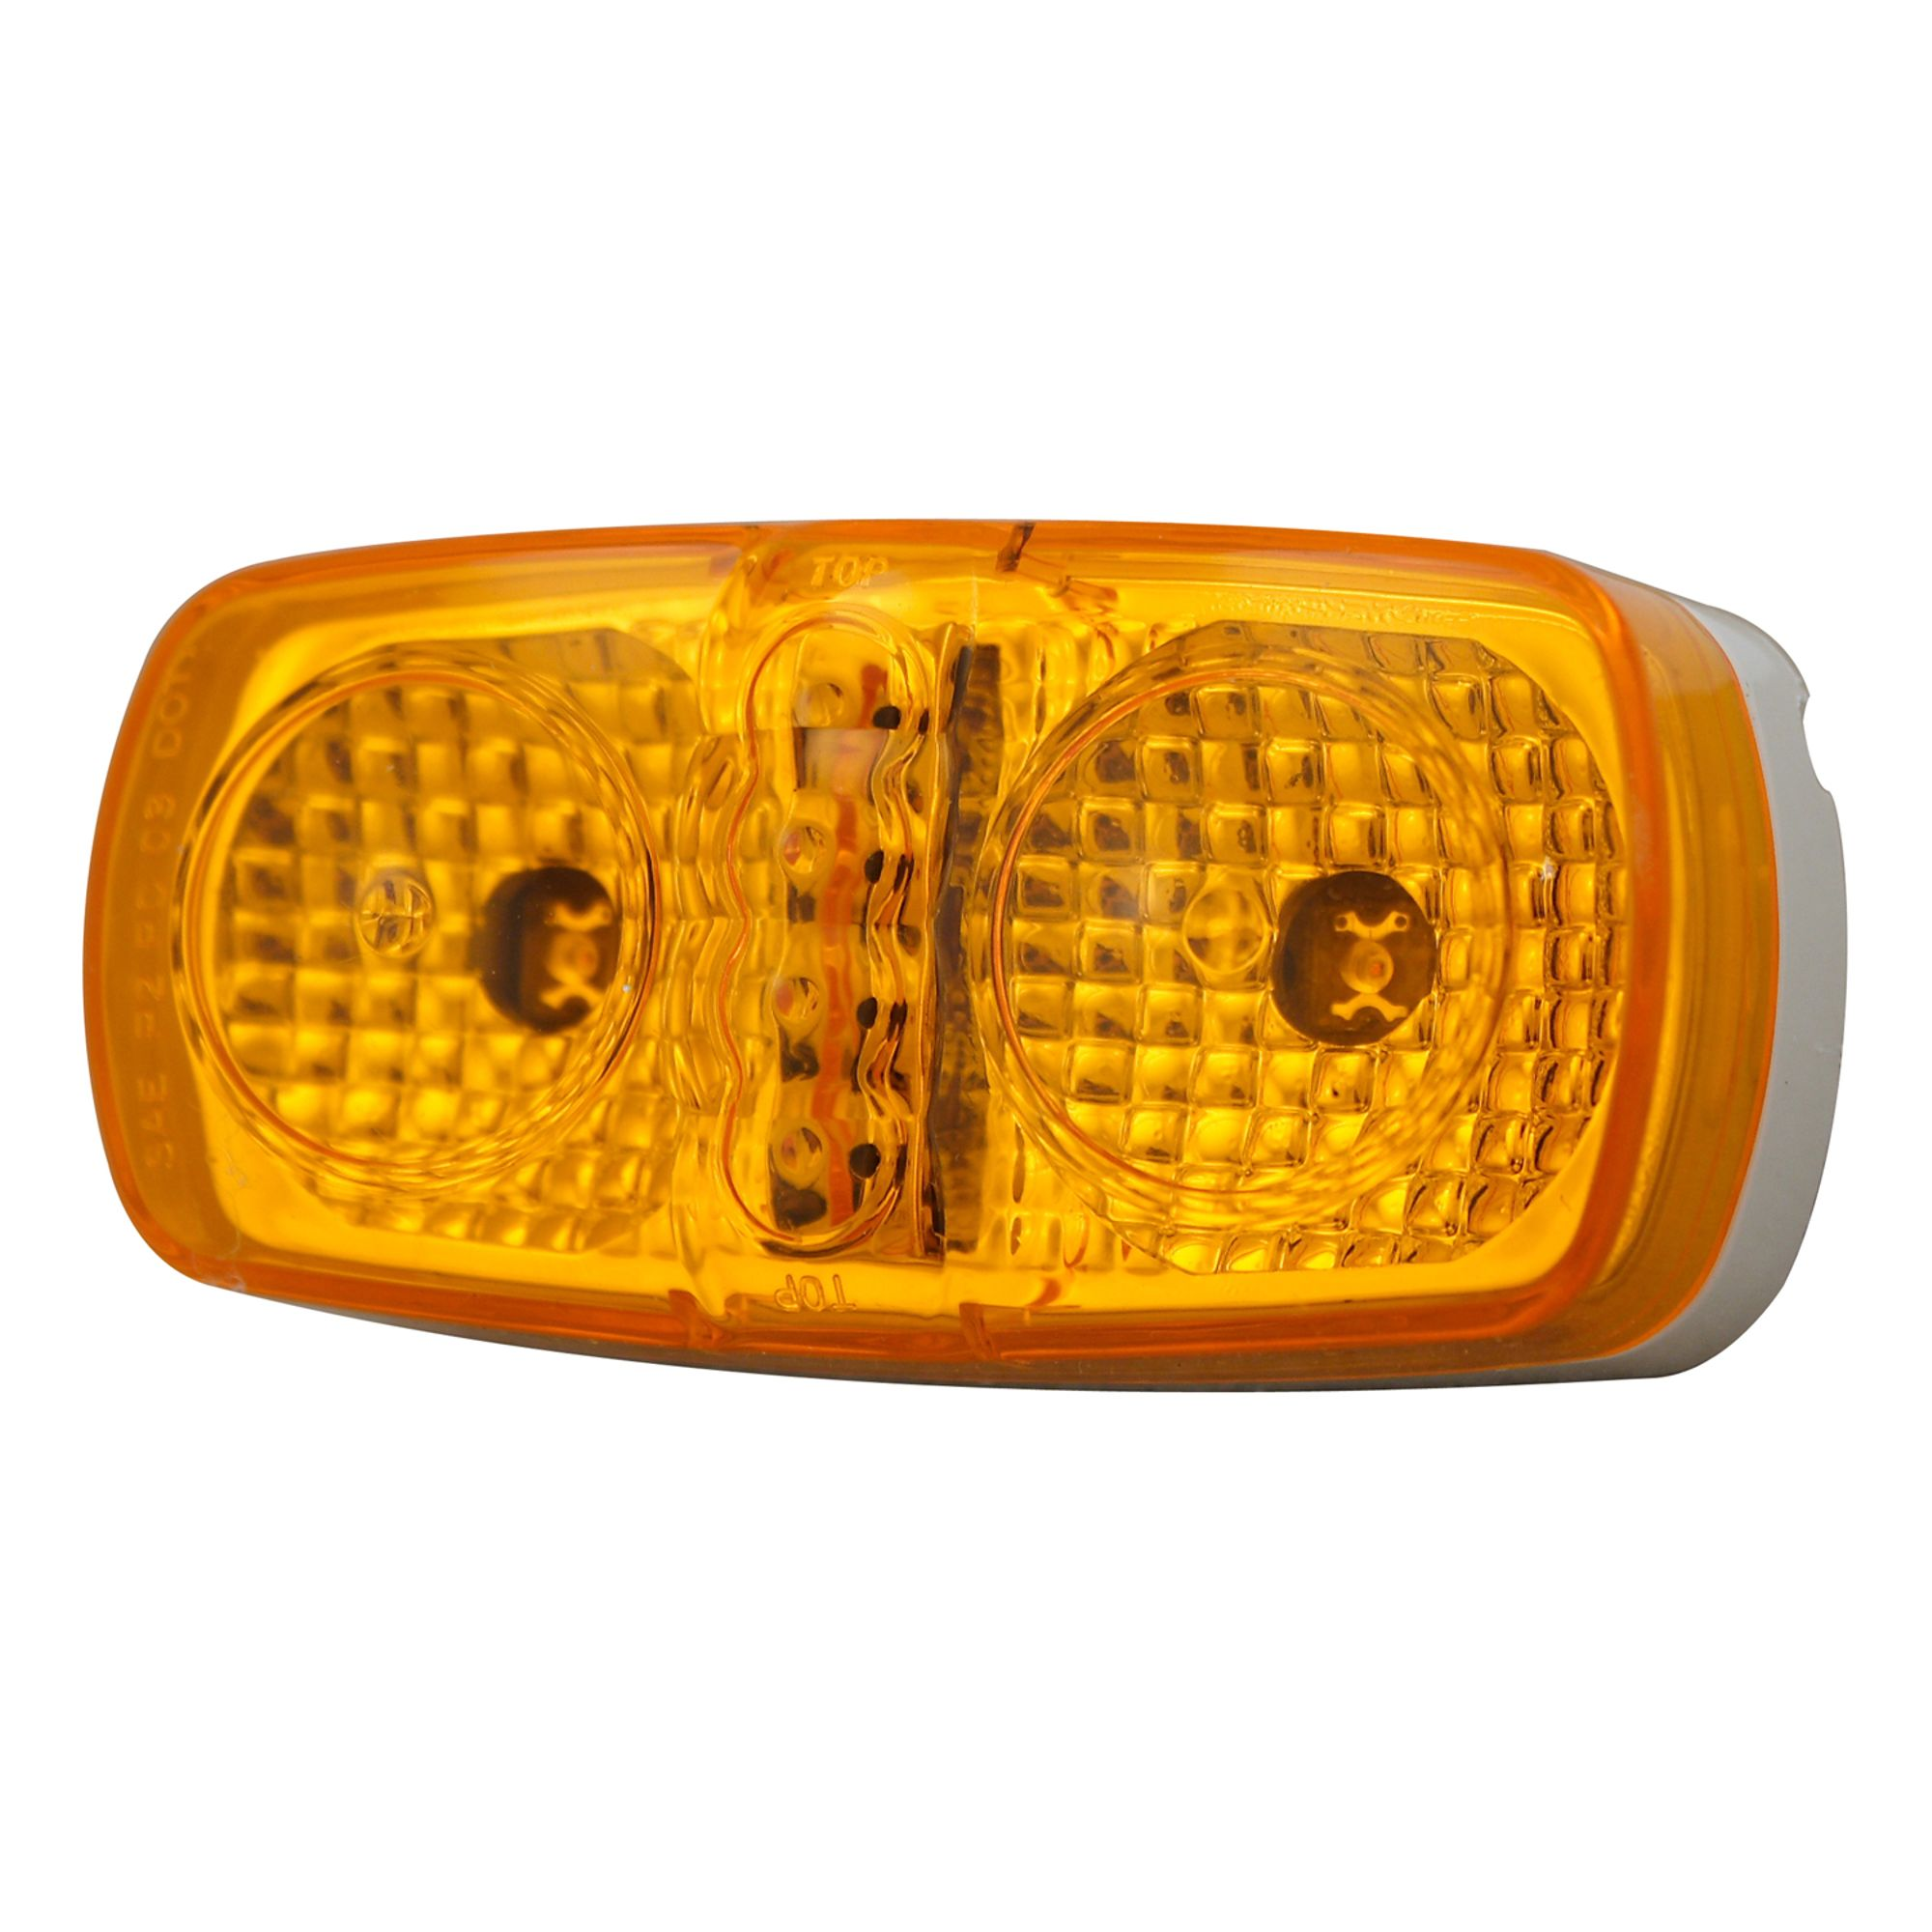 Pilot Automotive NV-5056A 12 Volt 4 inch Dual LED Side Marker / Reflector-Amber Size: 4 x 1-1/8  x 2